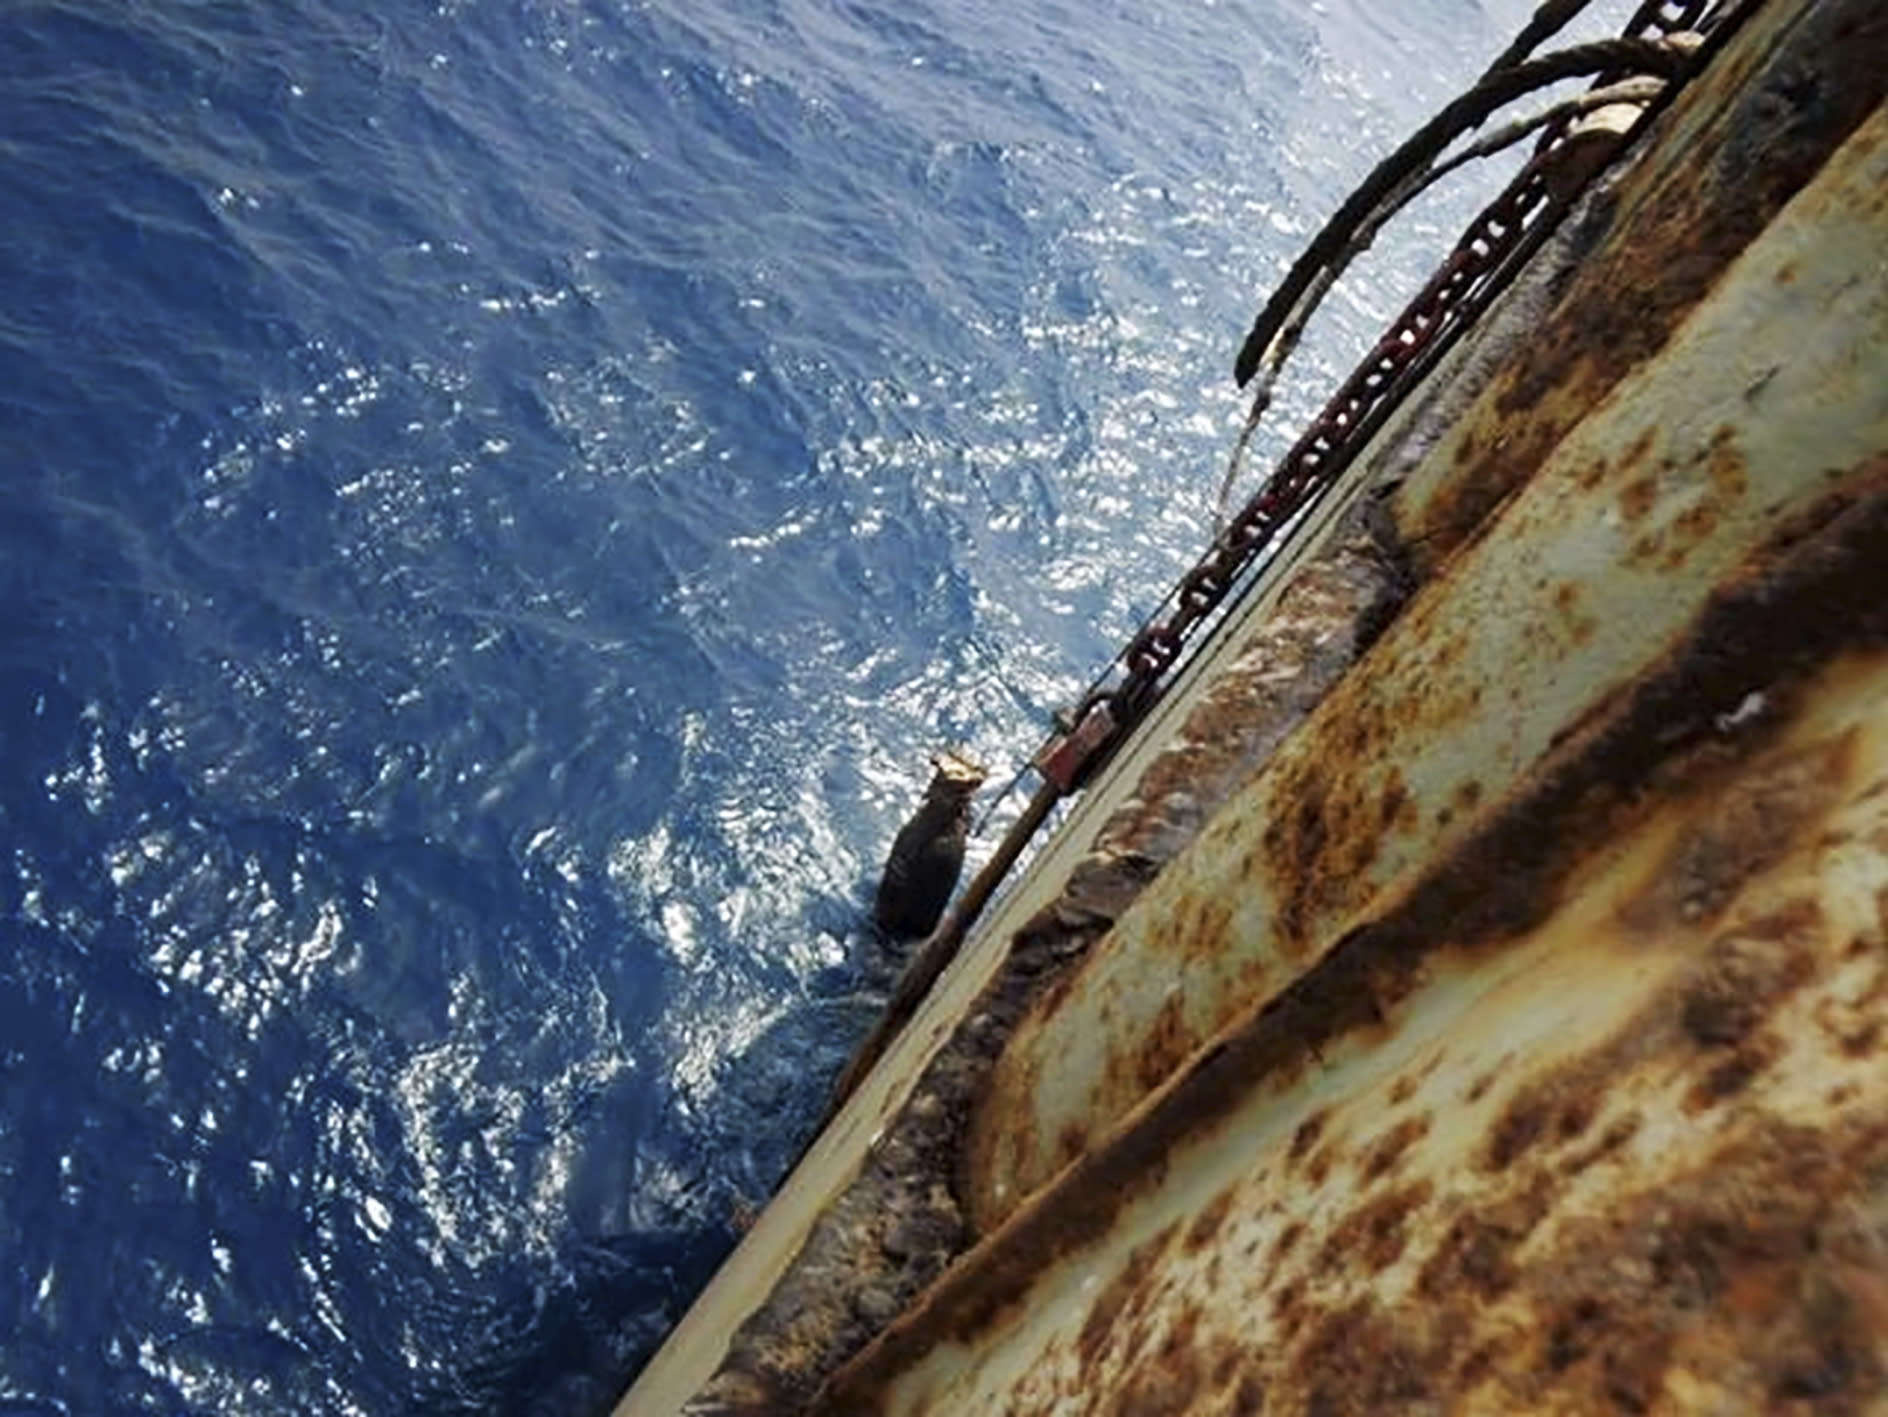 This image provided by I.R. Consilium taken in 2019, shows deterioration on the FSO Safer, moored off Ras Issa port, Yemen. Houthi rebels are blocking the United Nations from inspecting the abandoned oil tanker loaded with more than one million barrels of crude oil. UN officials and experts fear the tanker could explode or leak, causing massive environmental damage to Red Sea marine life. (I.R. Consilium via AP)